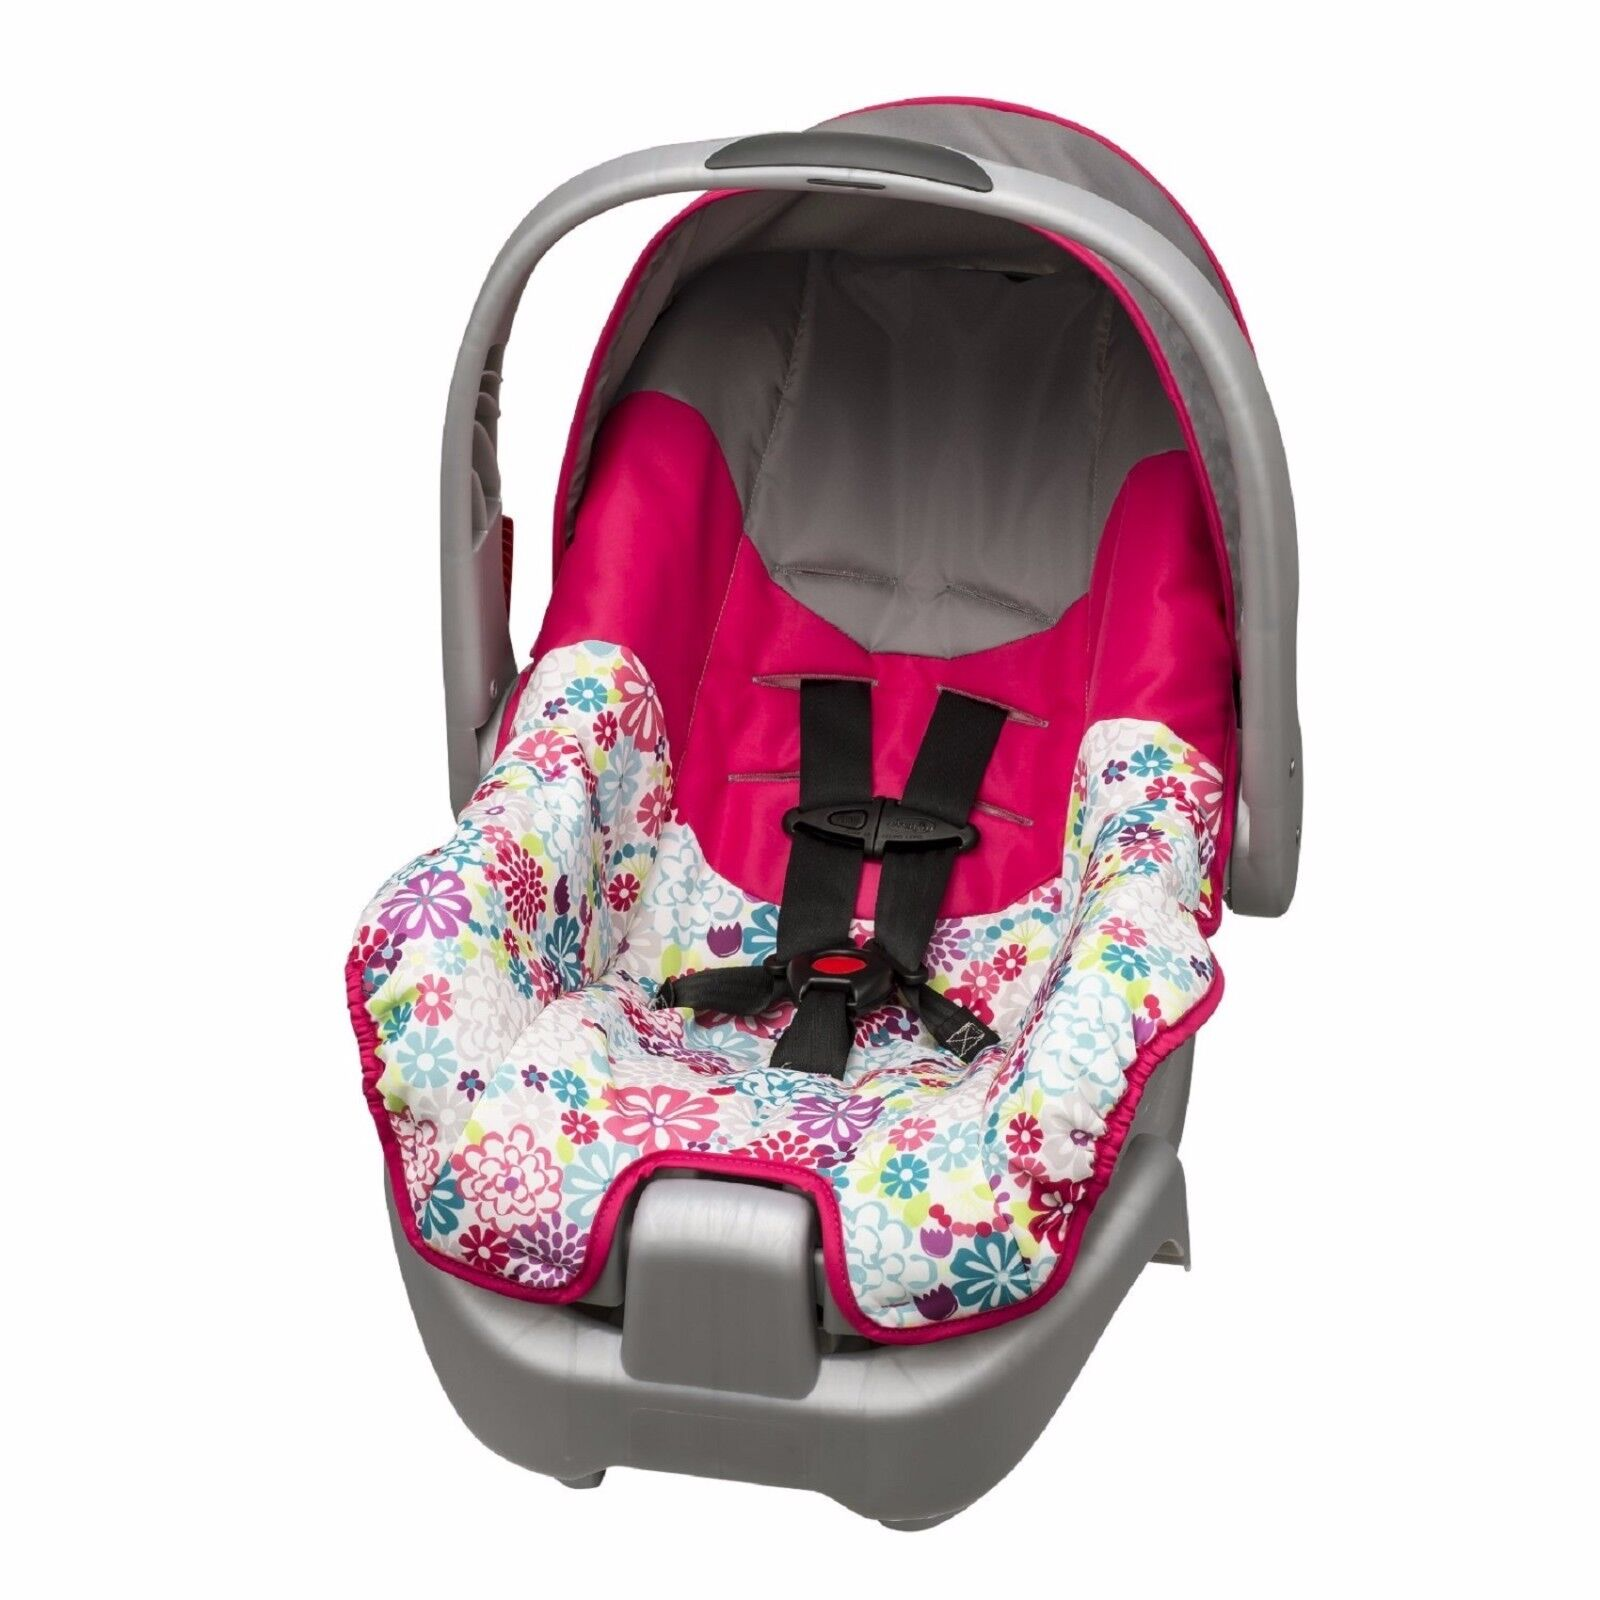 Infant Car Seat 5 20 Lbs Car Safety Seats Baby